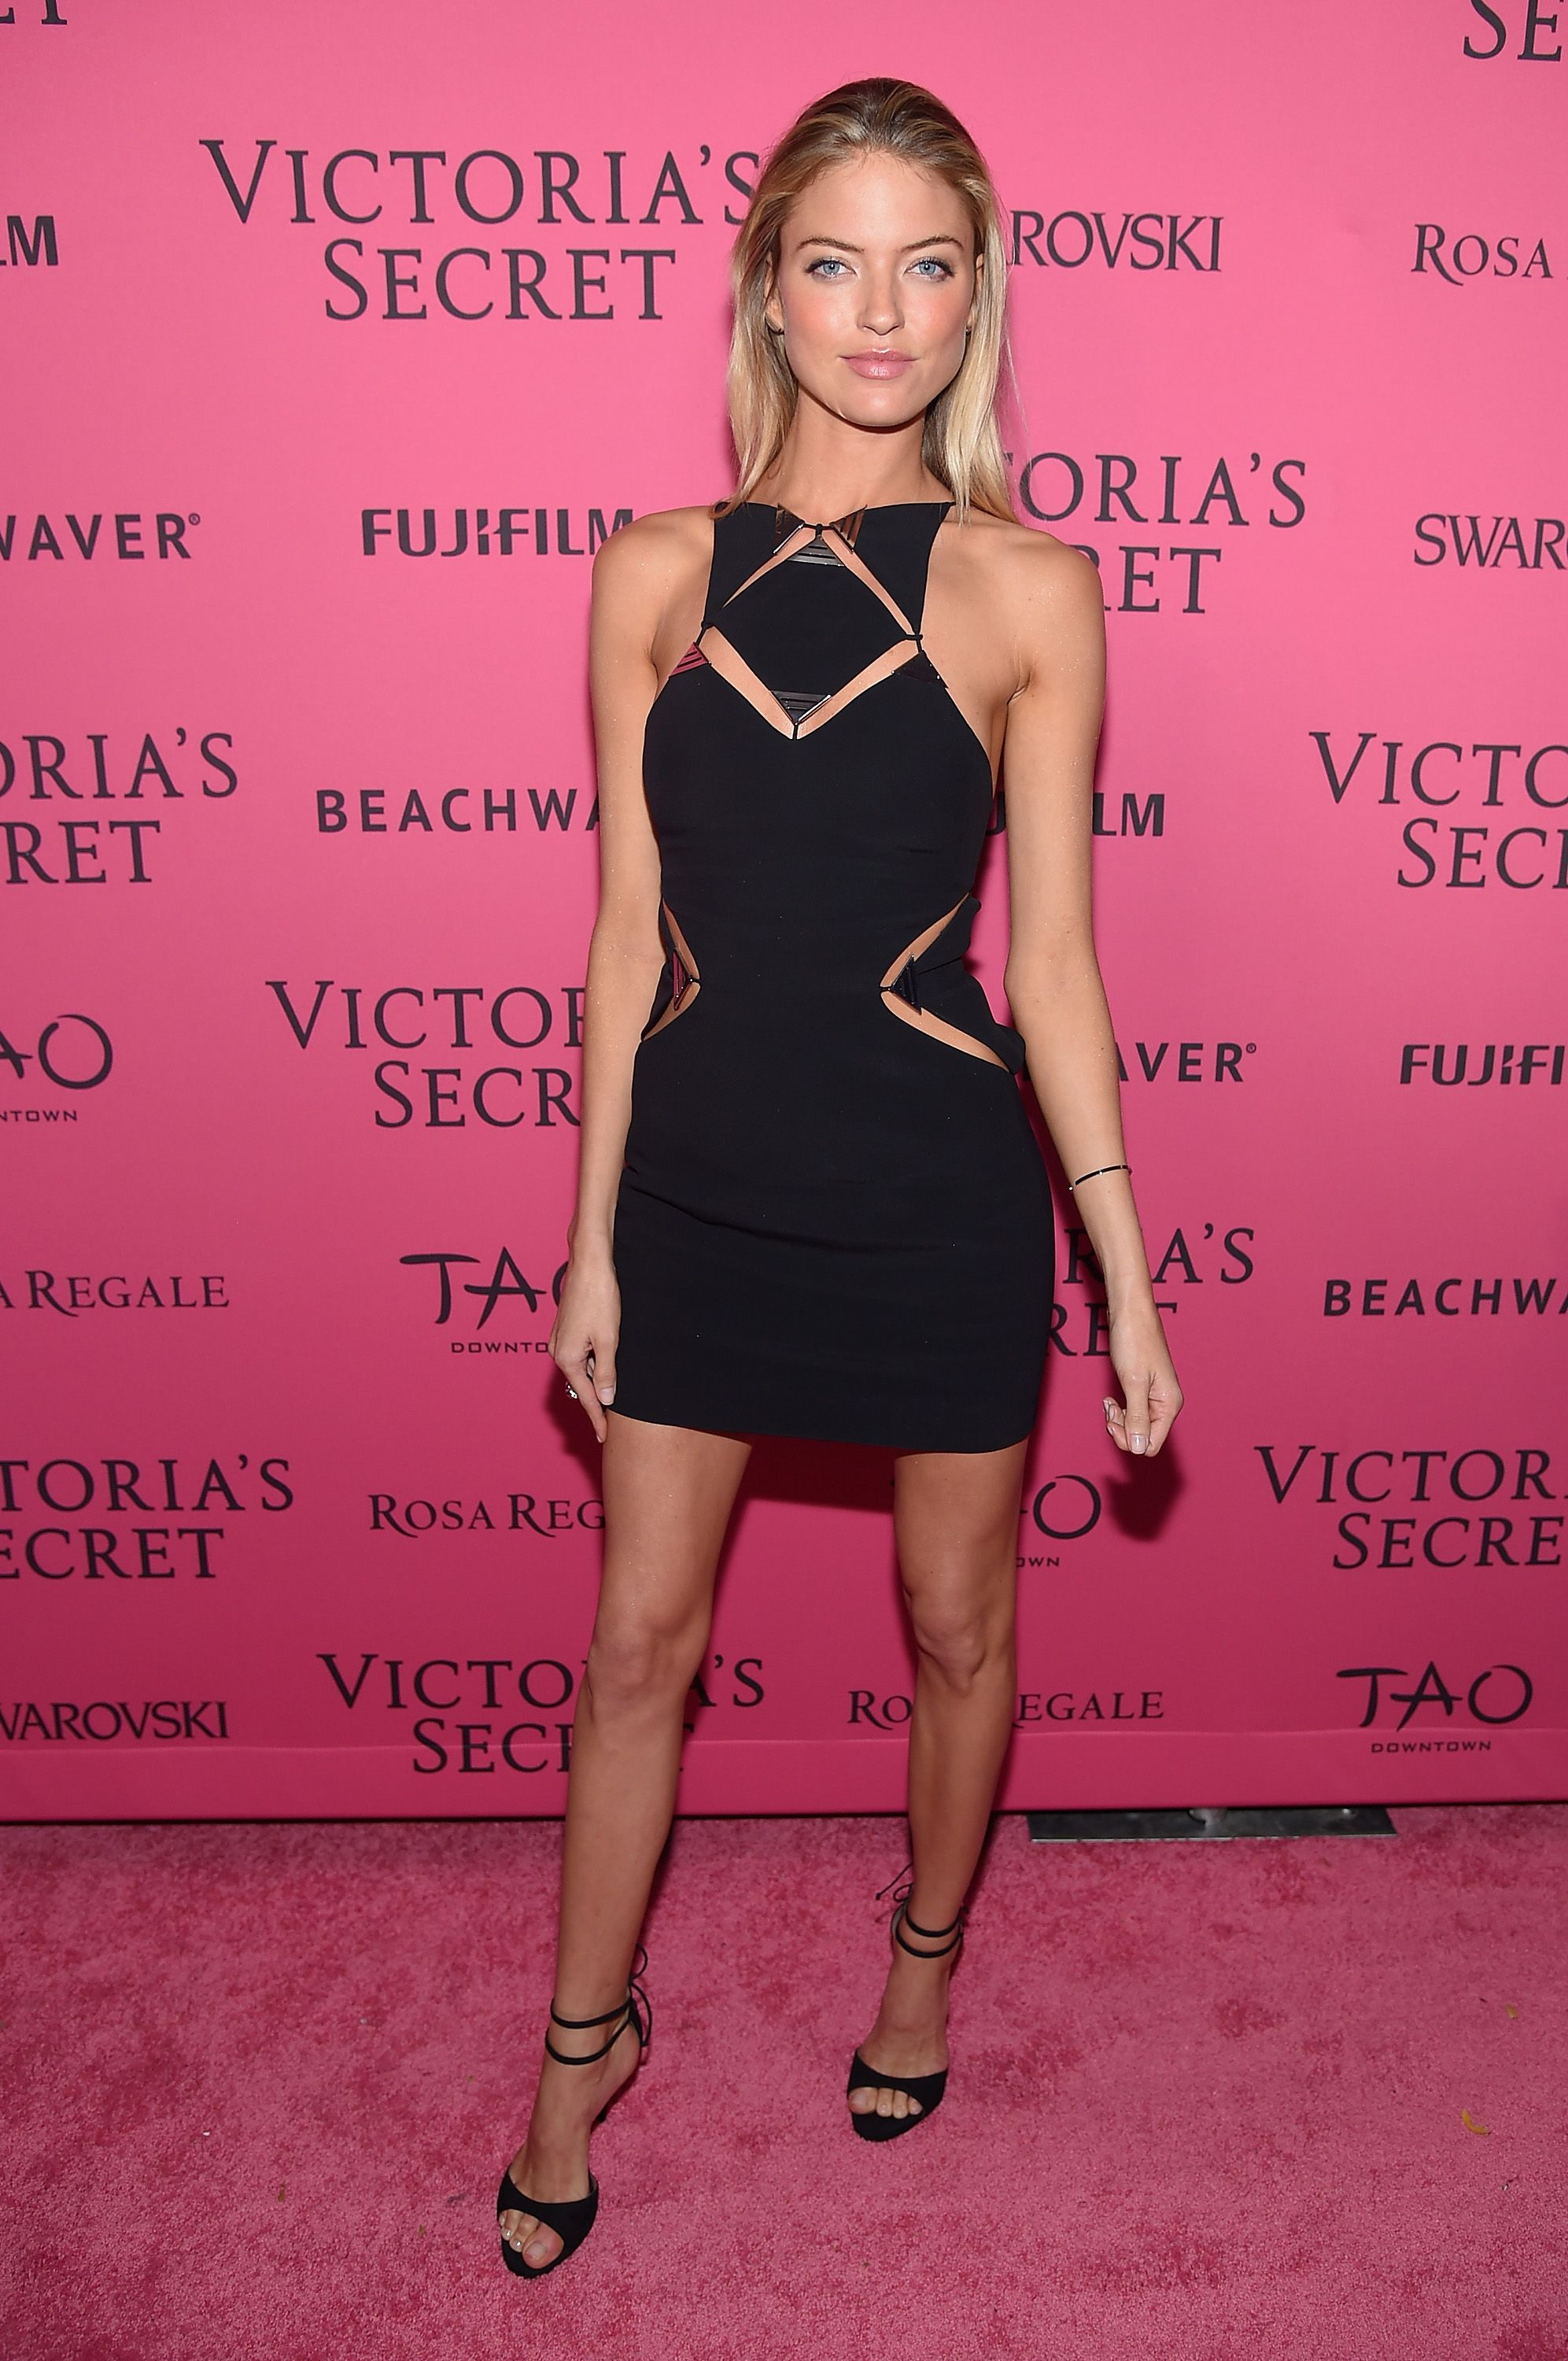 See What The Victoria S Secret Angels Wore To The After Party Victoria Secret Fashion Show Victoria Secret Victoria Secret Fashion [ 3000 x 1993 Pixel ]